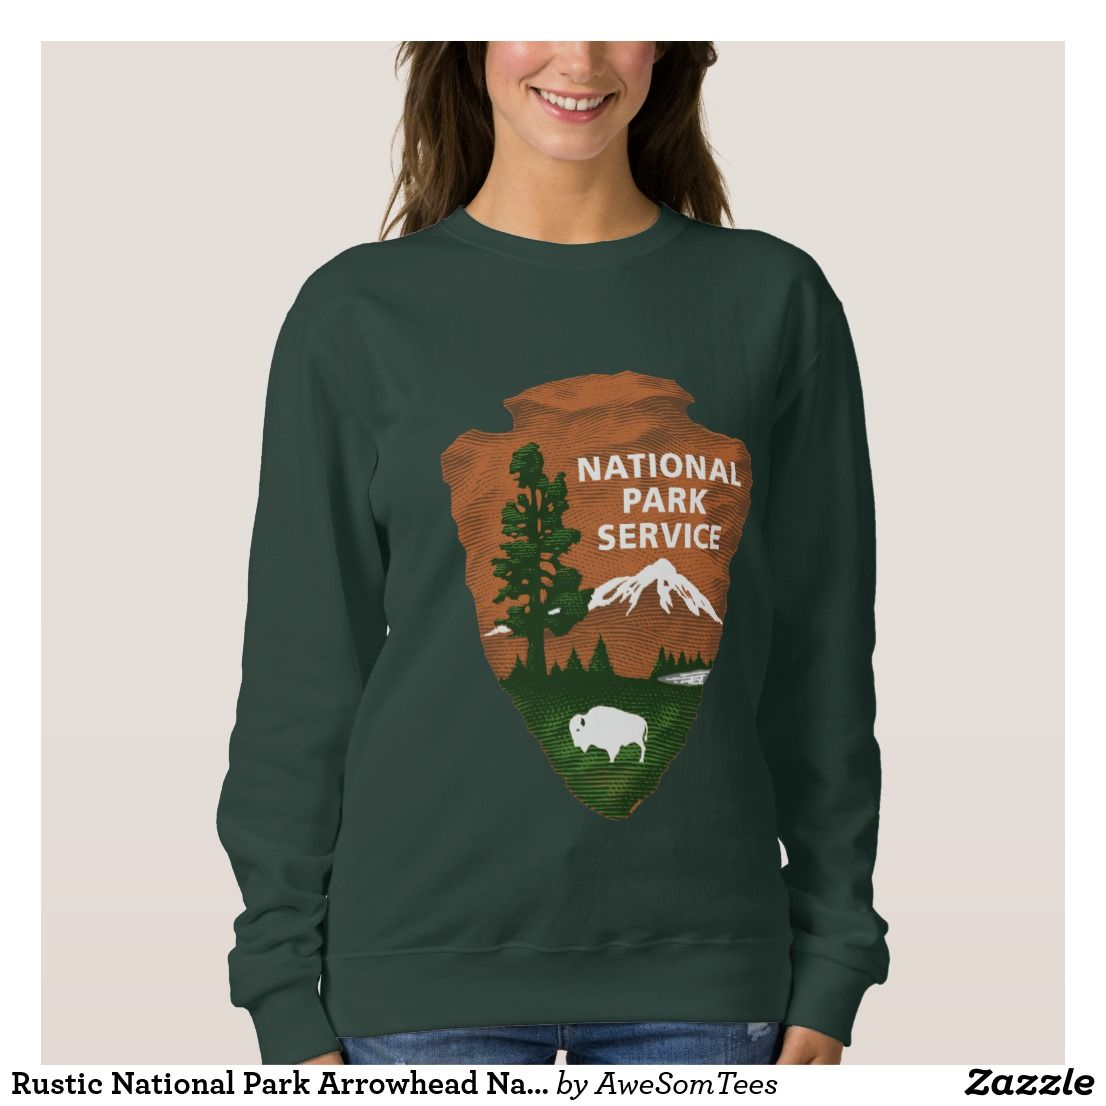 Rustic National Park Arrowhead Nature Sweatshirt Zazzle